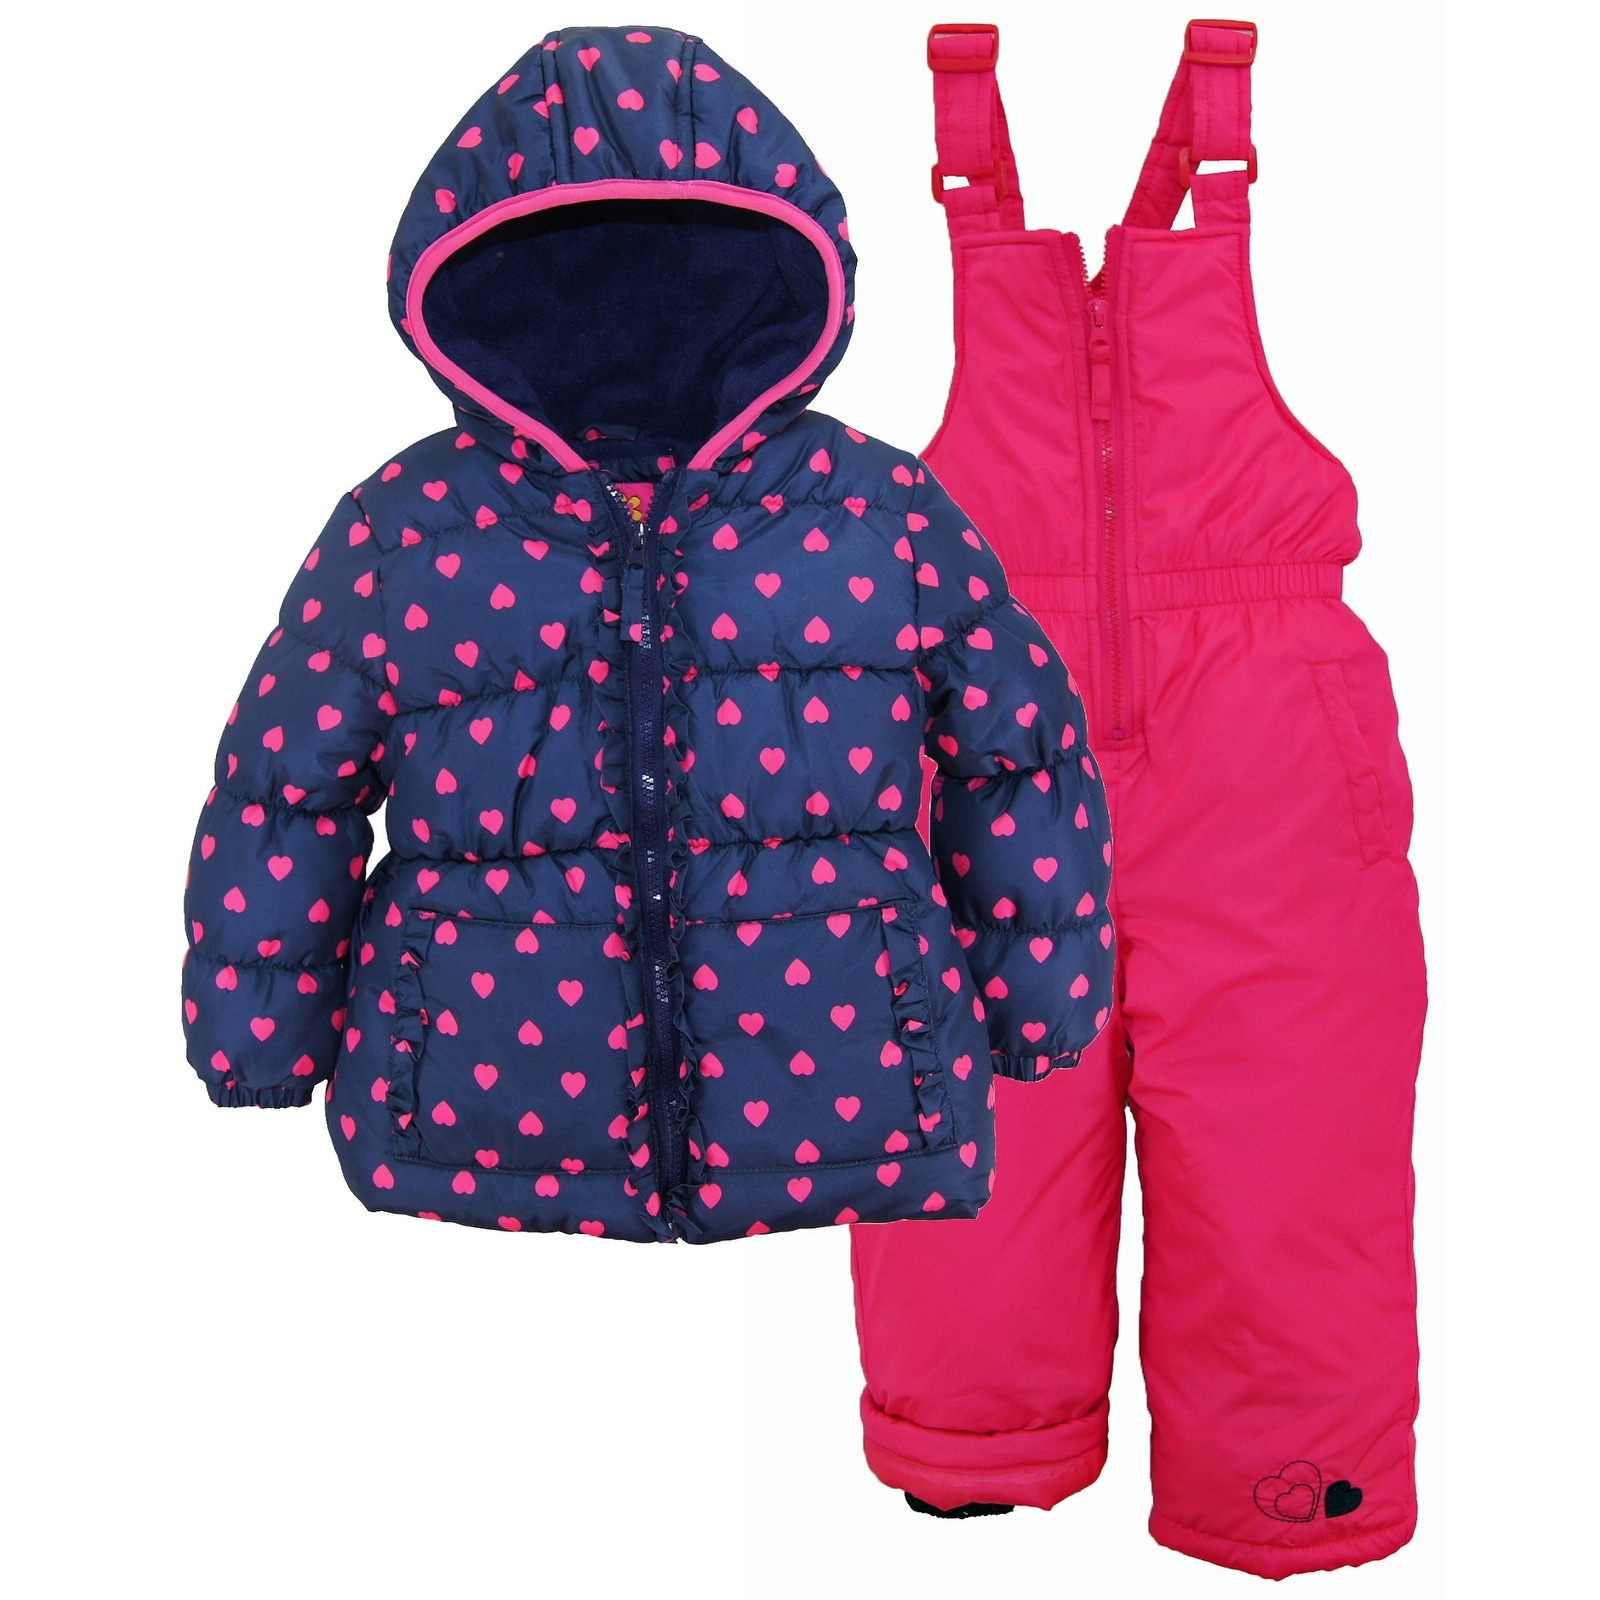 3a6146764 Shop Pink Platinum Girls Snowsuit Heart Printed Winter Puffer Jacket ...